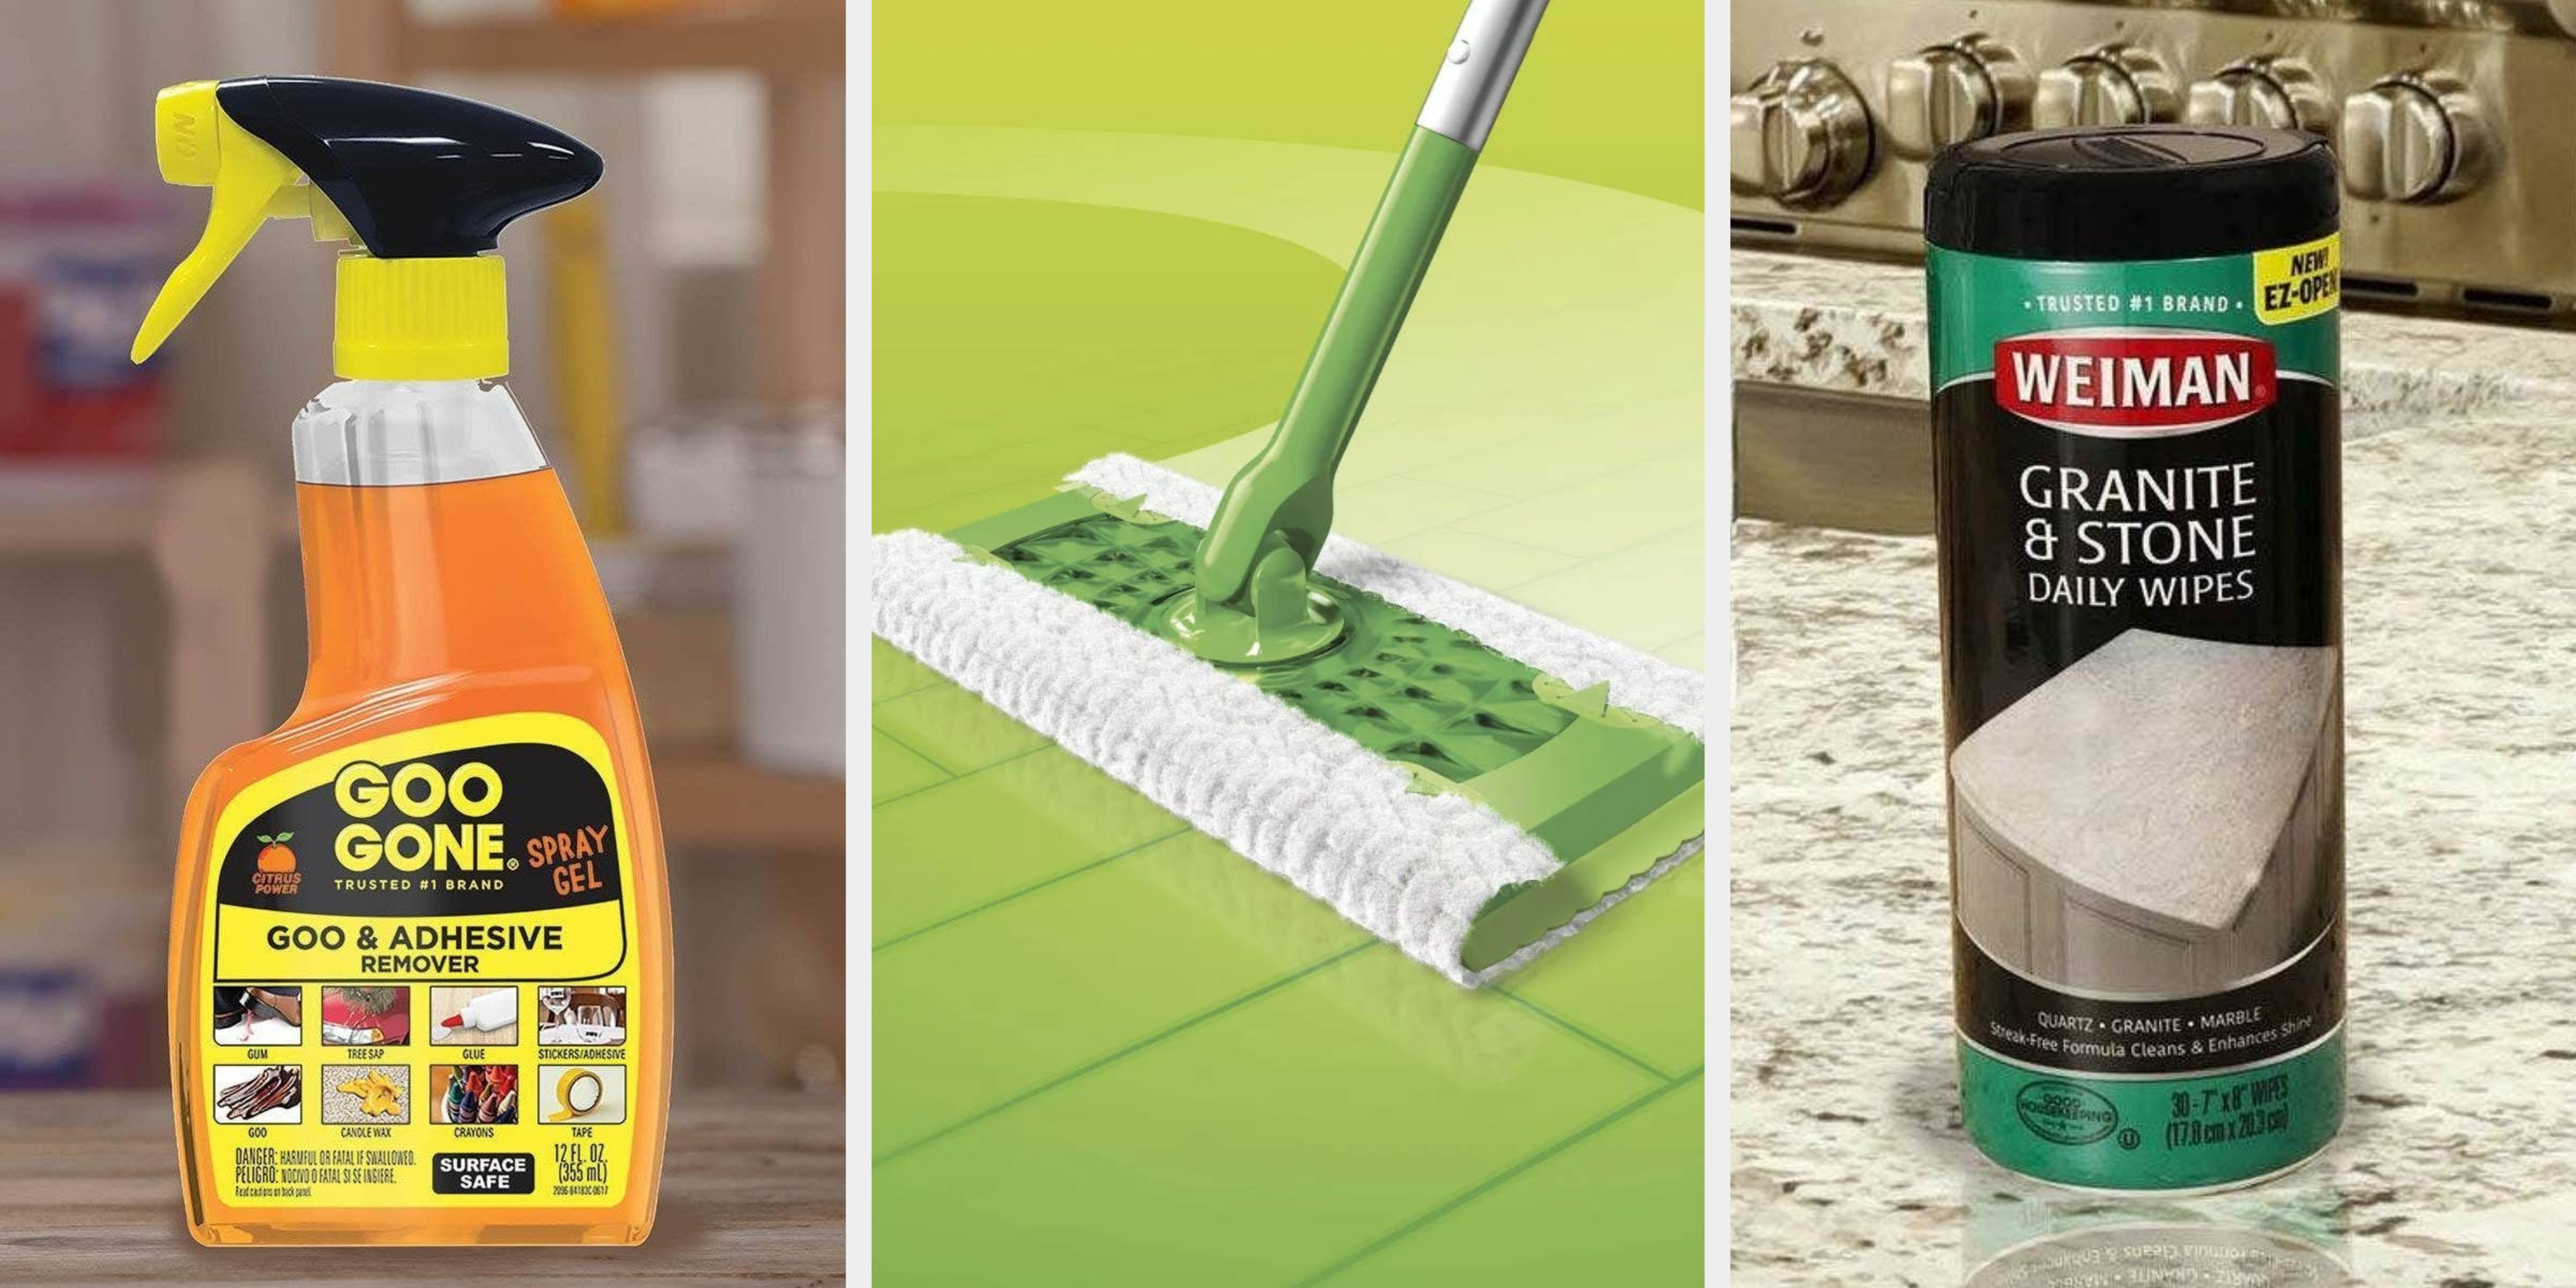 31 Best Selling Cleaning Products From Target That Are Popular For A Reason